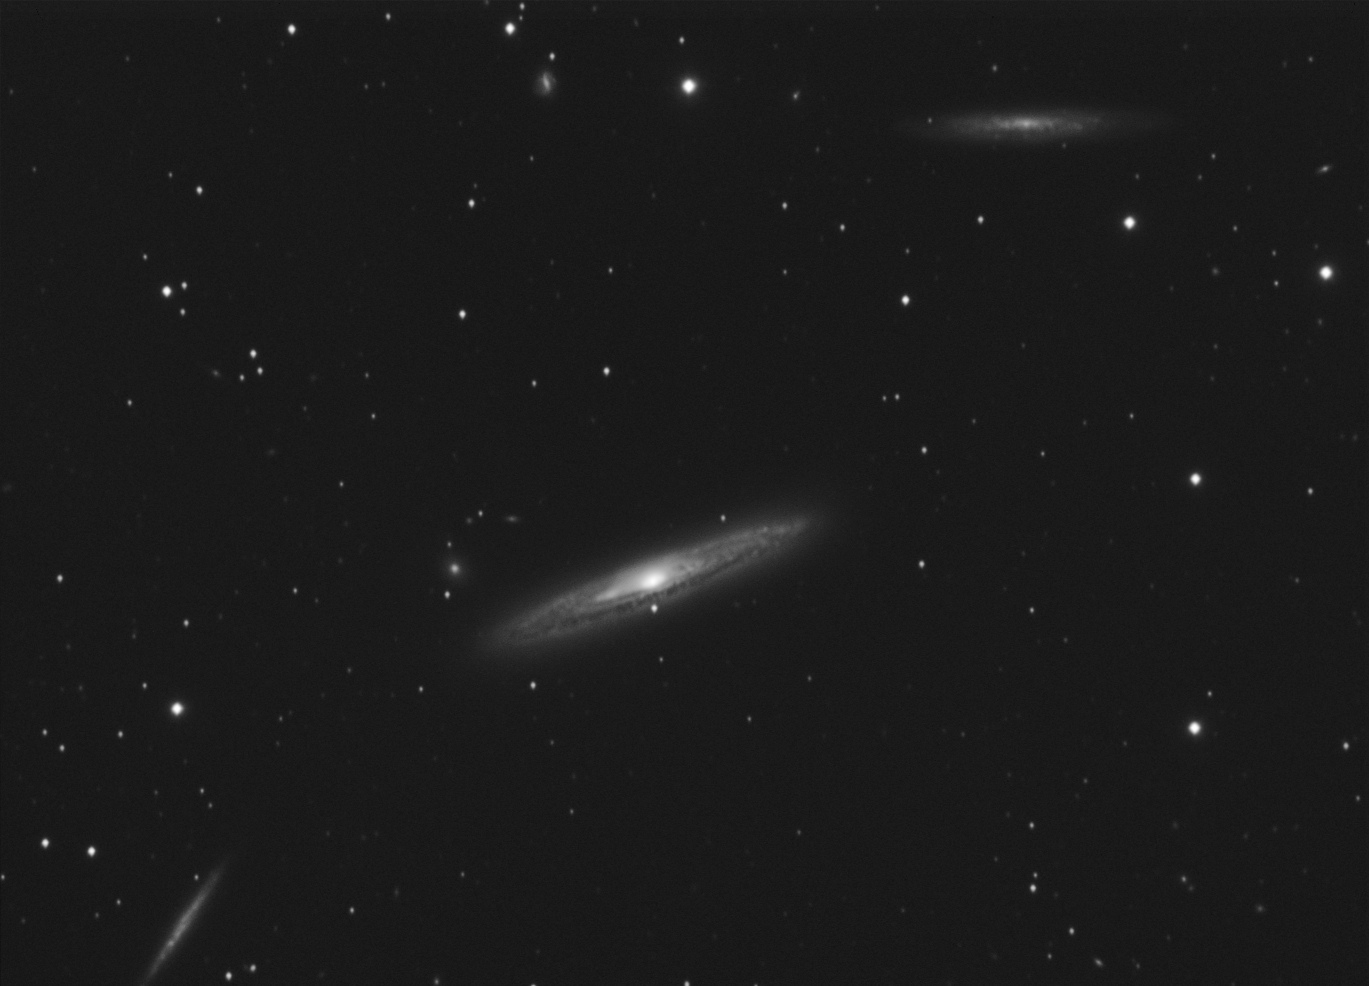 ngc4222-ngc4216-ngc4206-C8-red0.5-atik16hr-L13x300s-SP